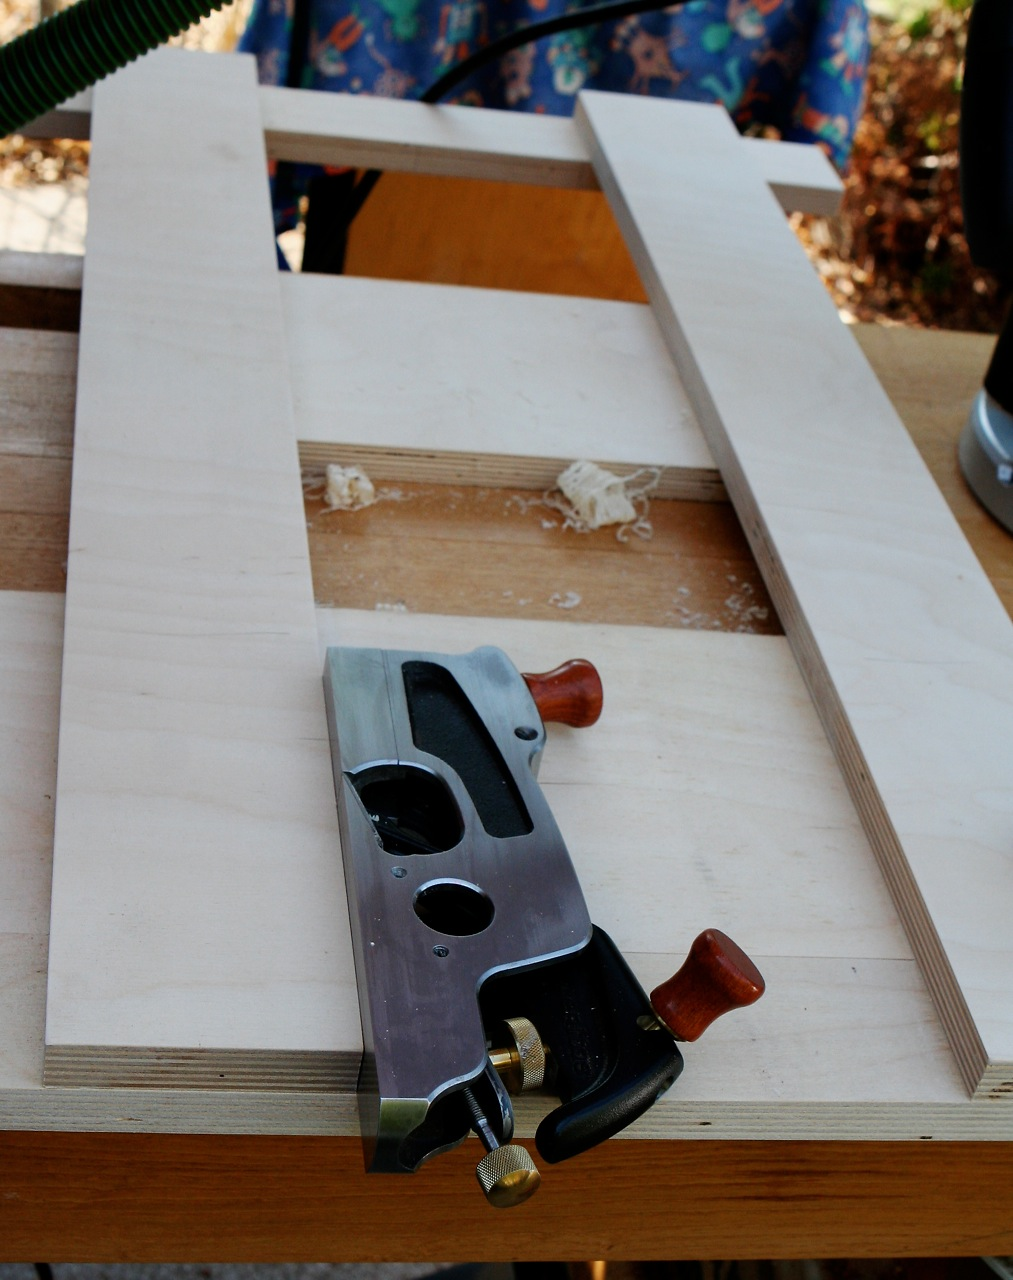 Fine tuning a dado/sliding dovetail jig (used with router)